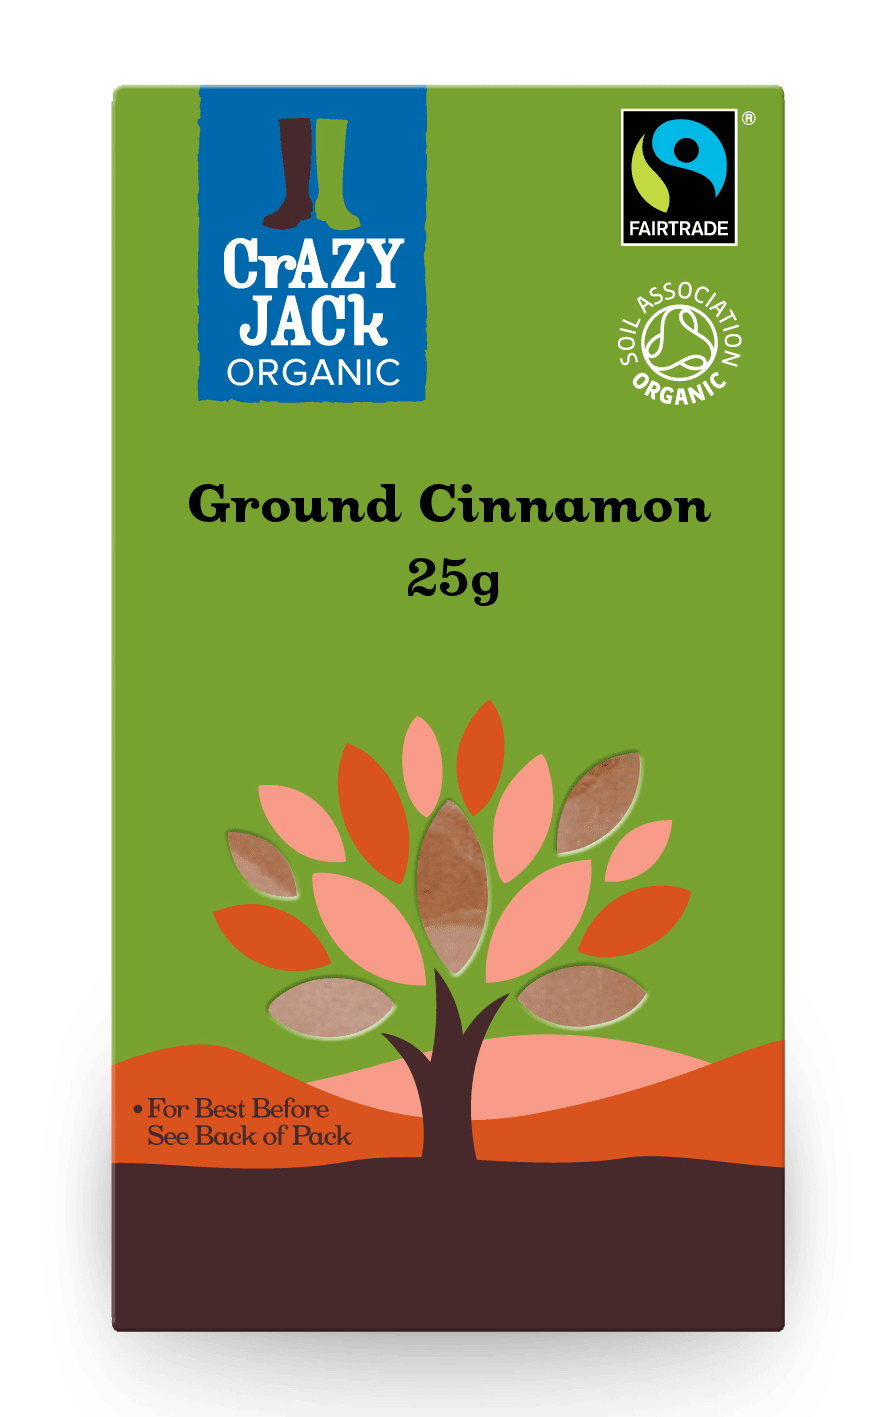 Packaging for 25g of ground cinnamon